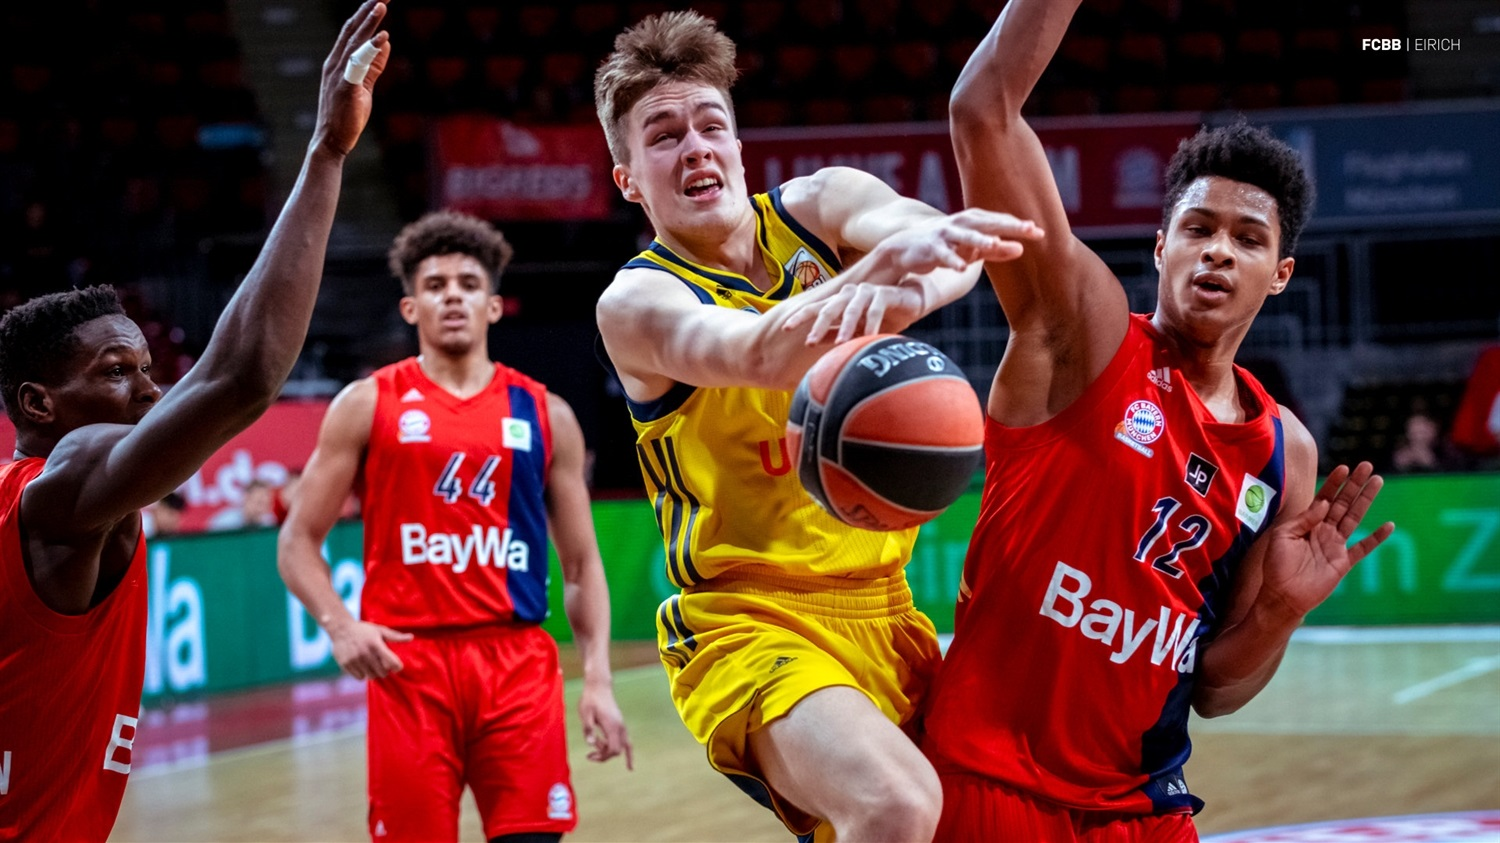 Elias Roedl - U18 ALBA Berlin - ANGT Munich 2019 (photo FCBB - Eirich) JT18